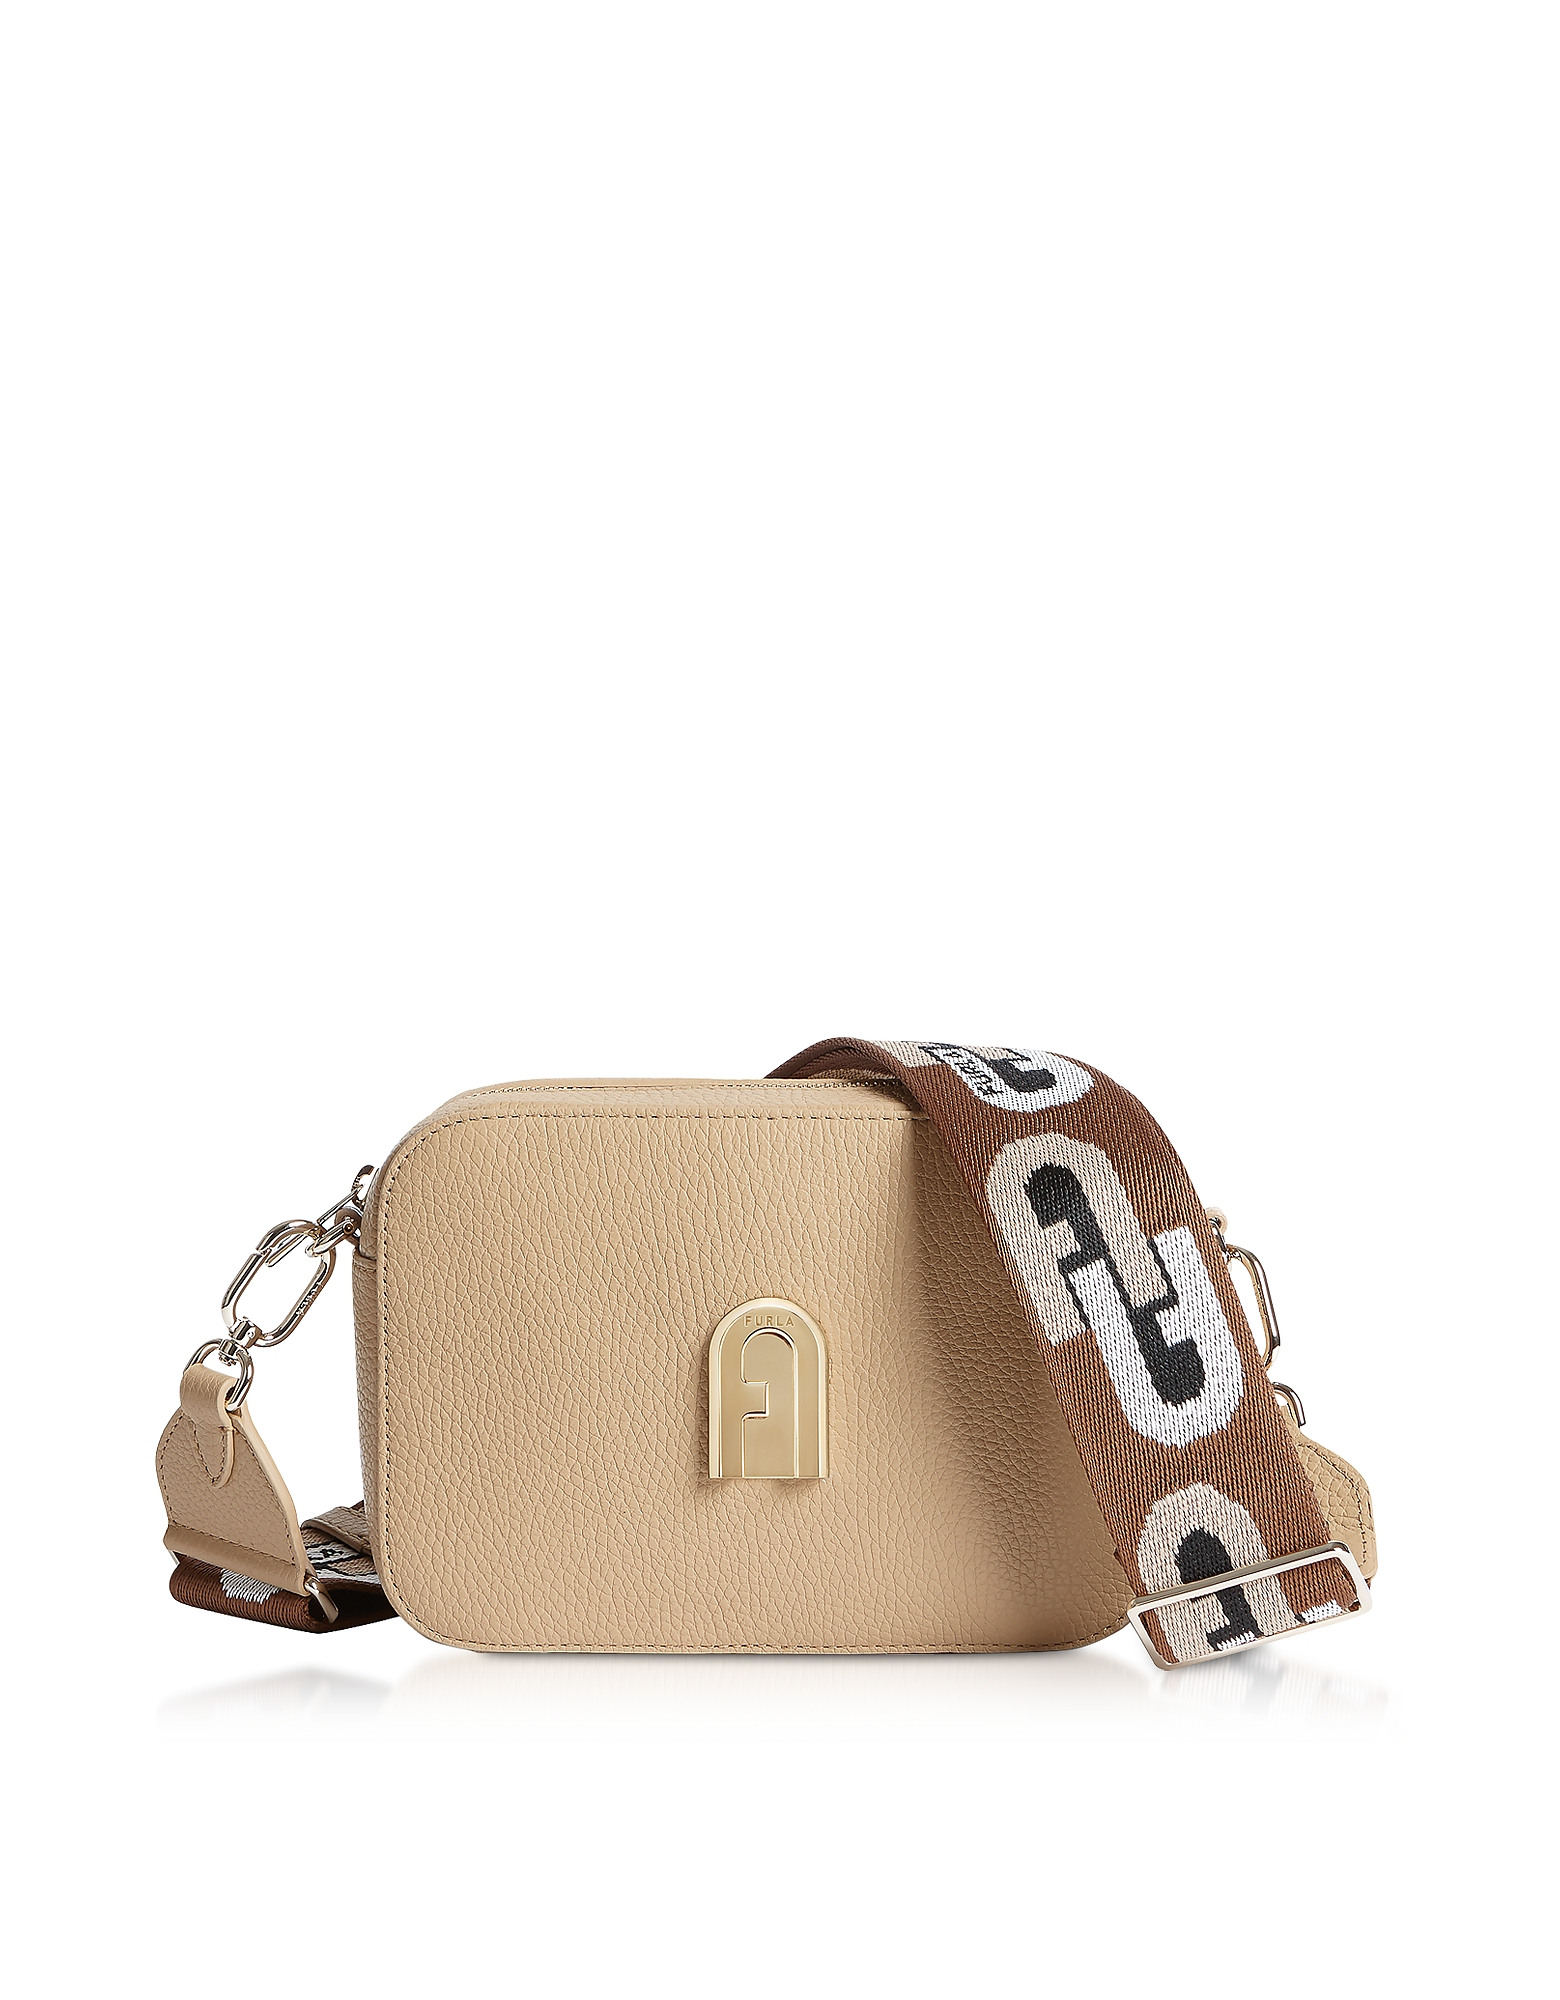 Furla Sleek Mini Crossbody Bag In Sand